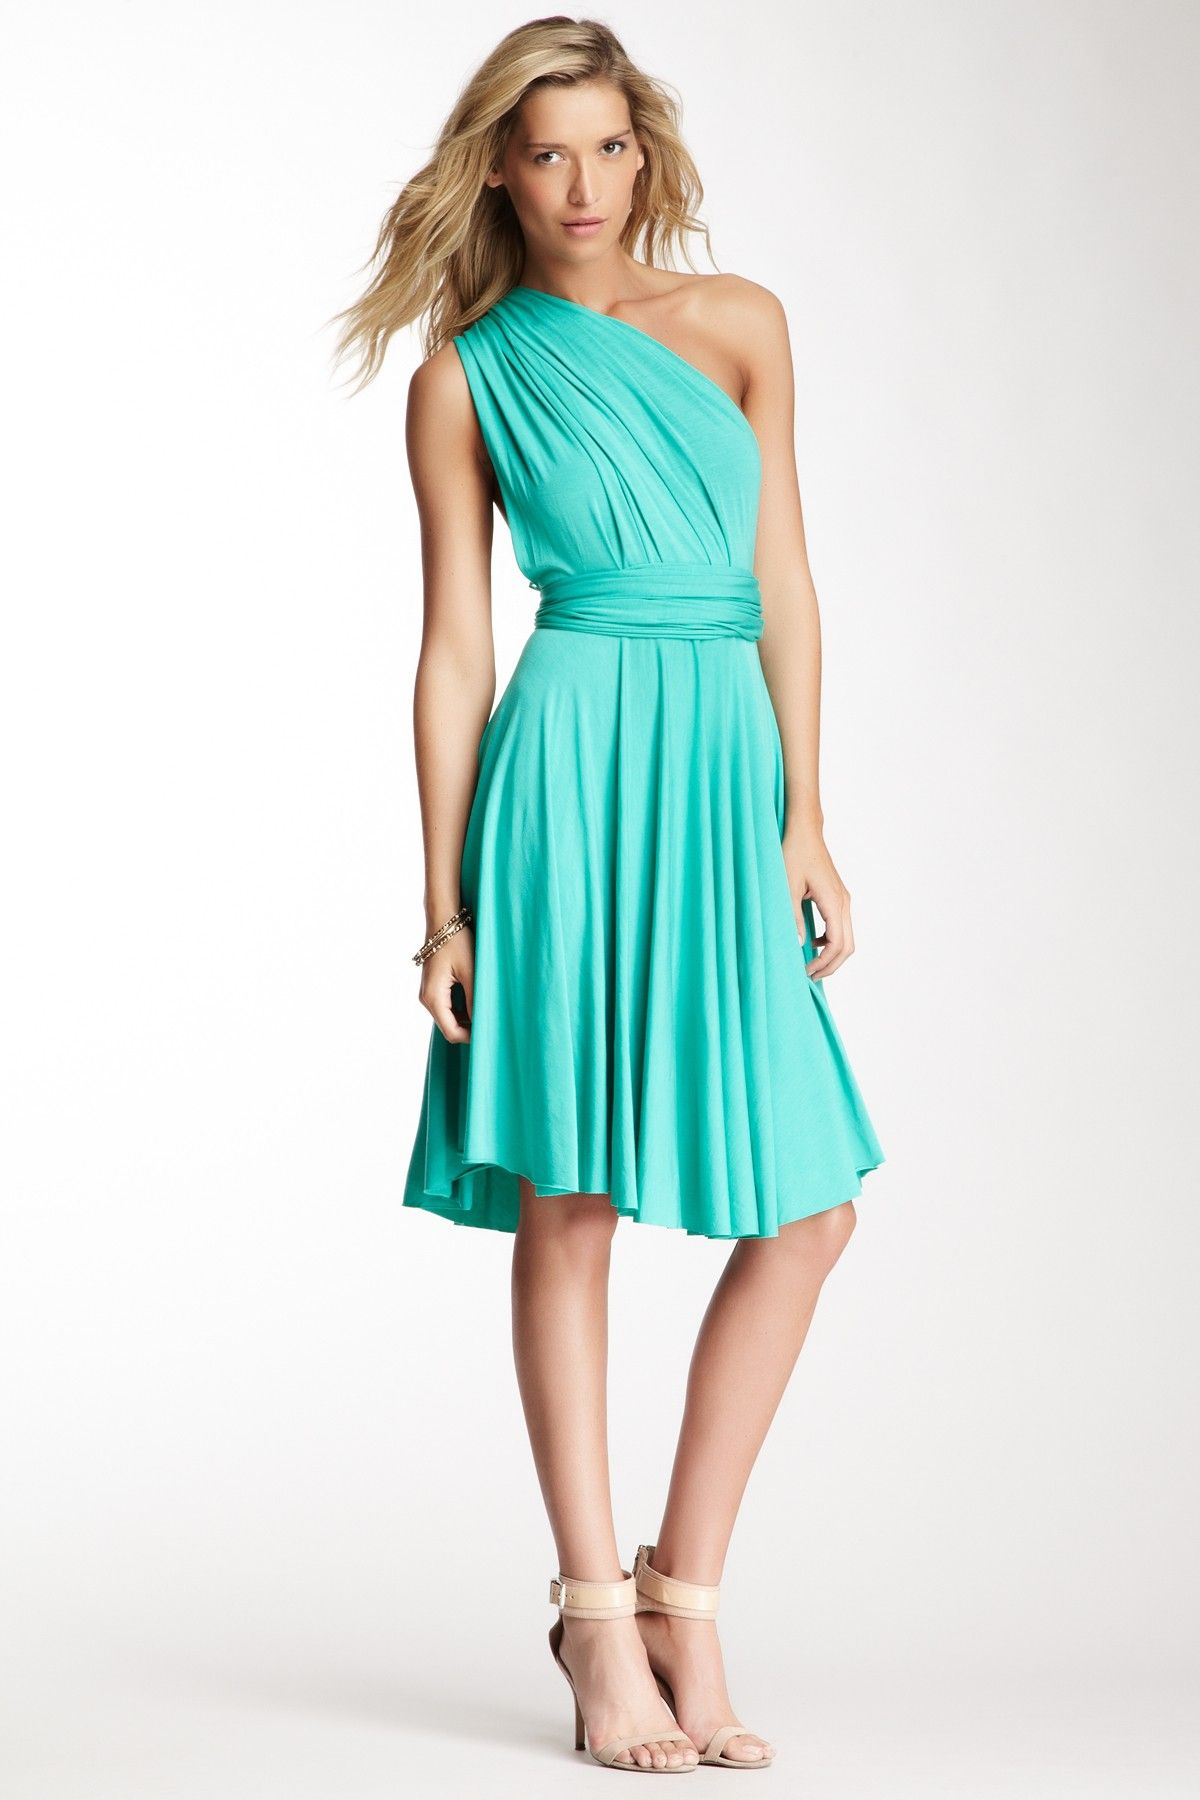 Minty Convertible Dress | fashion | Pinterest | Convertible ...